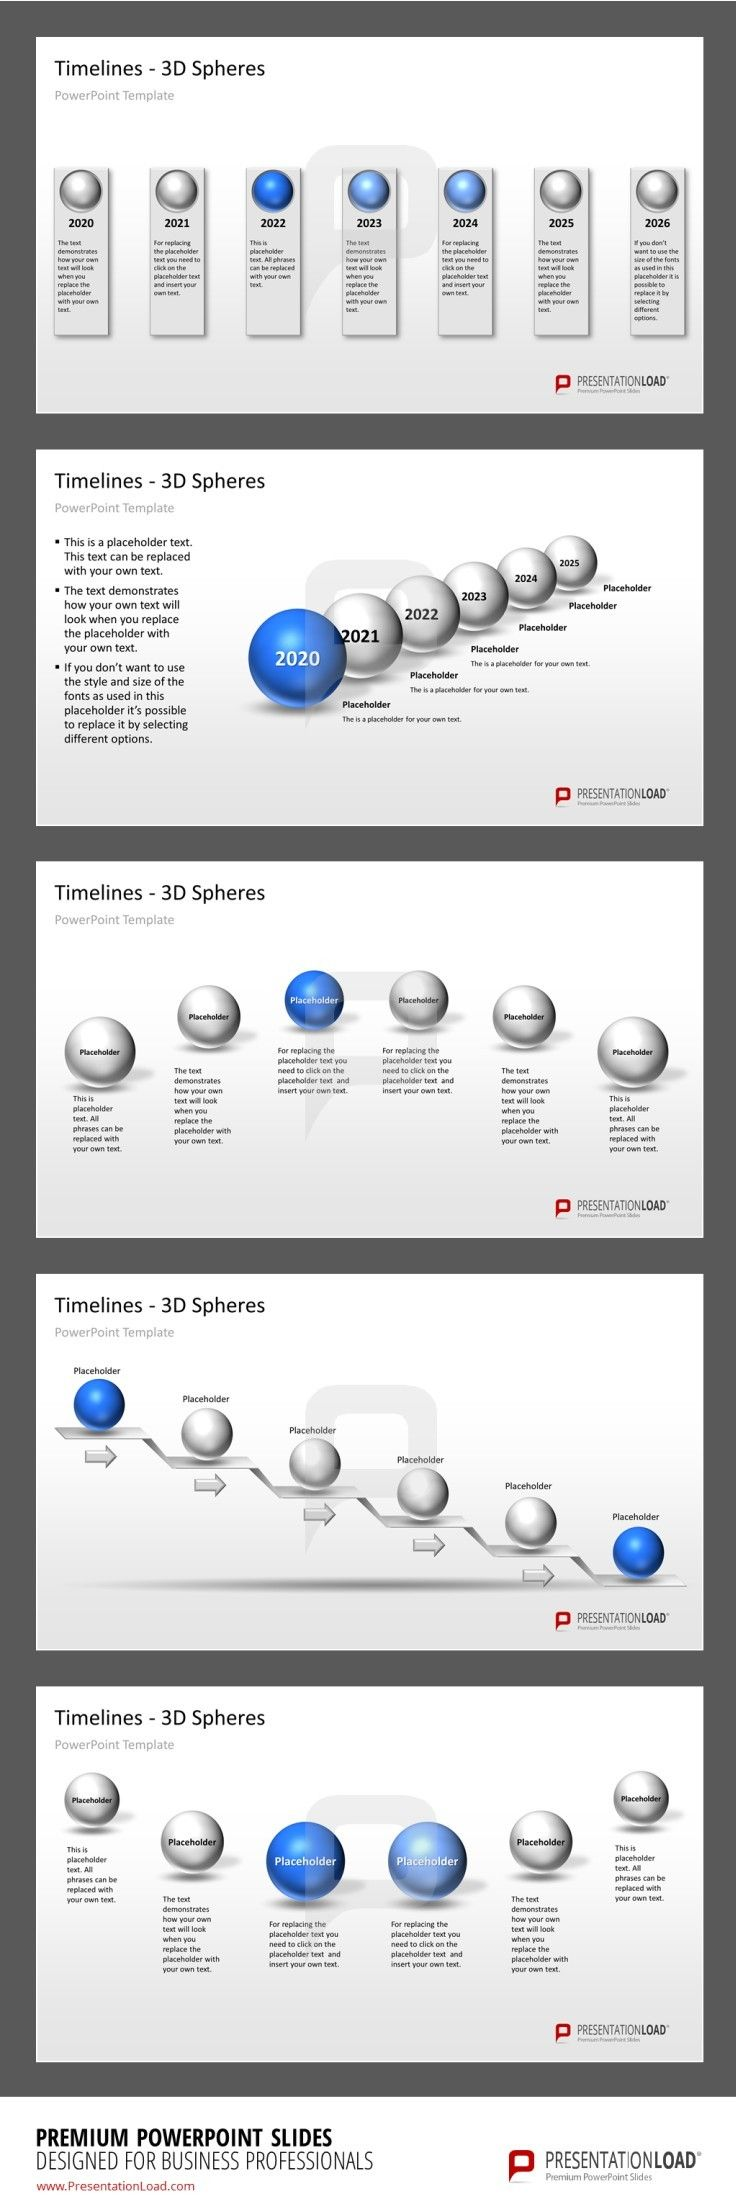 17 best images about zeitstrahl powerpoint on pinterest timeline template and globes. Black Bedroom Furniture Sets. Home Design Ideas